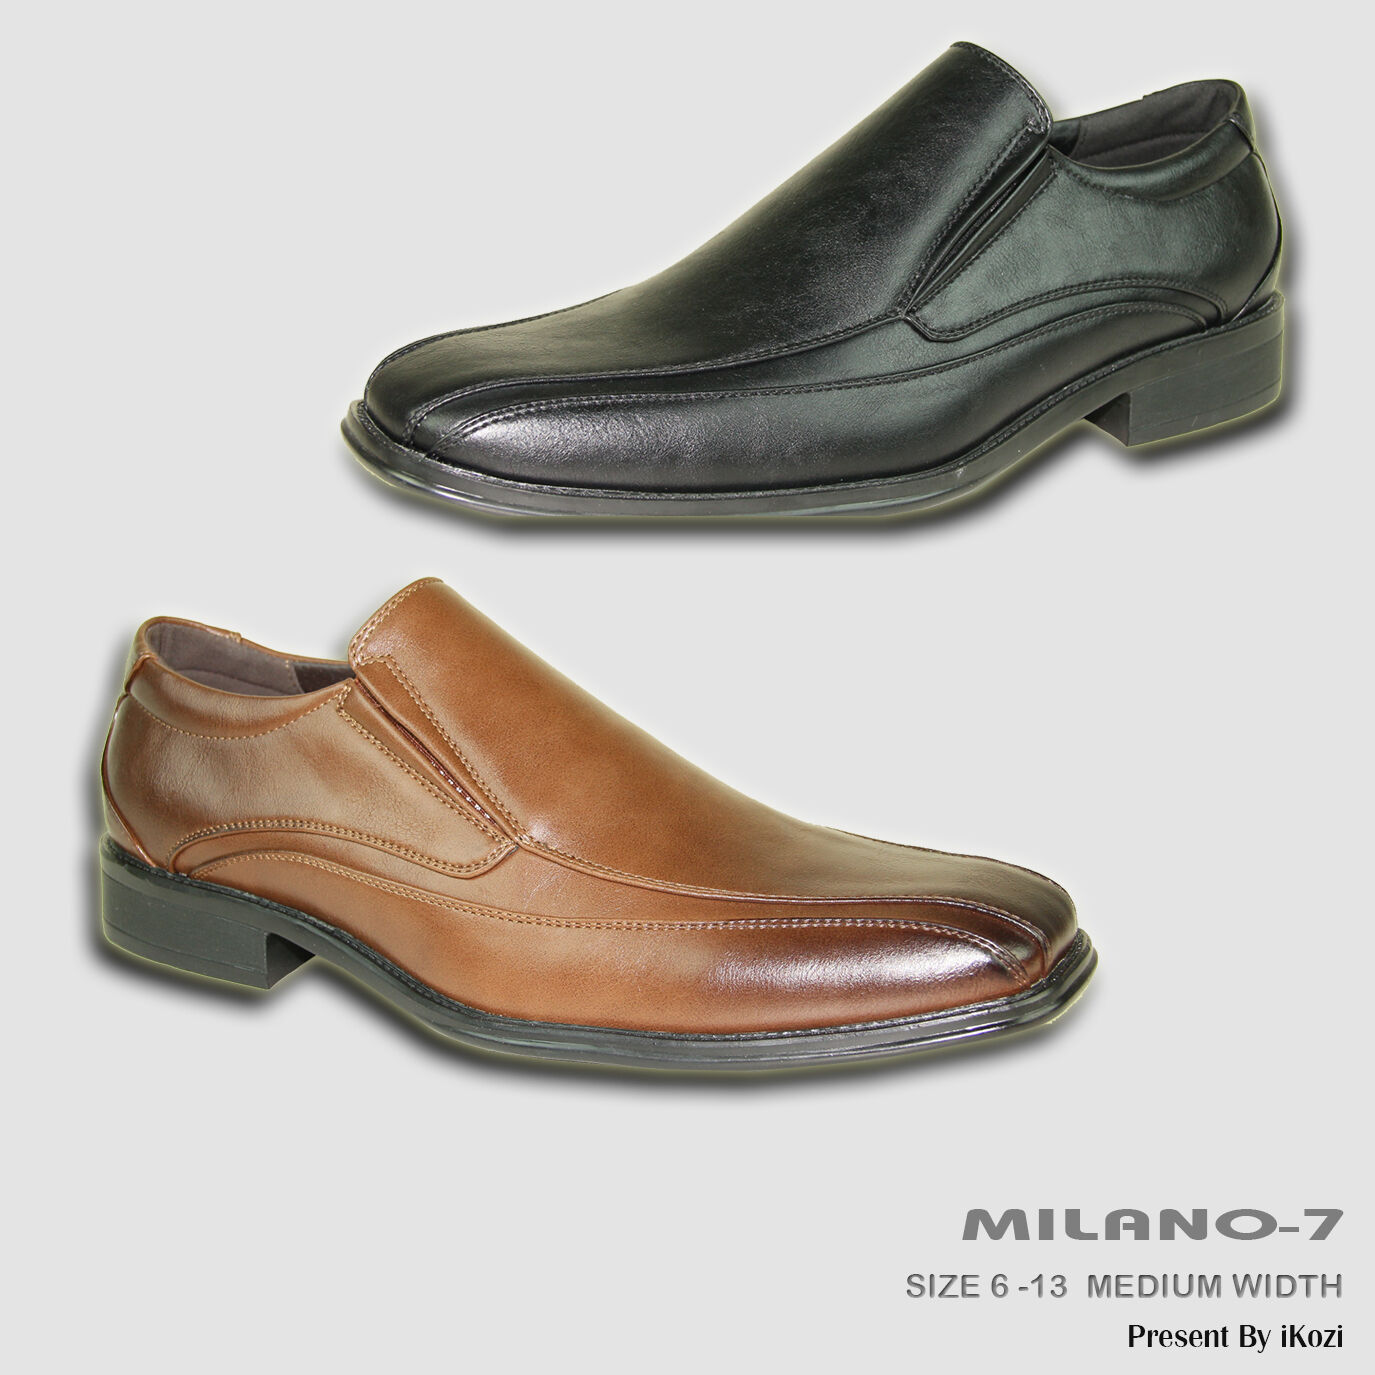 BRAVO New Men Dress shoes MILANO-7 Loafer Square Bicycle Toe Leather Lining